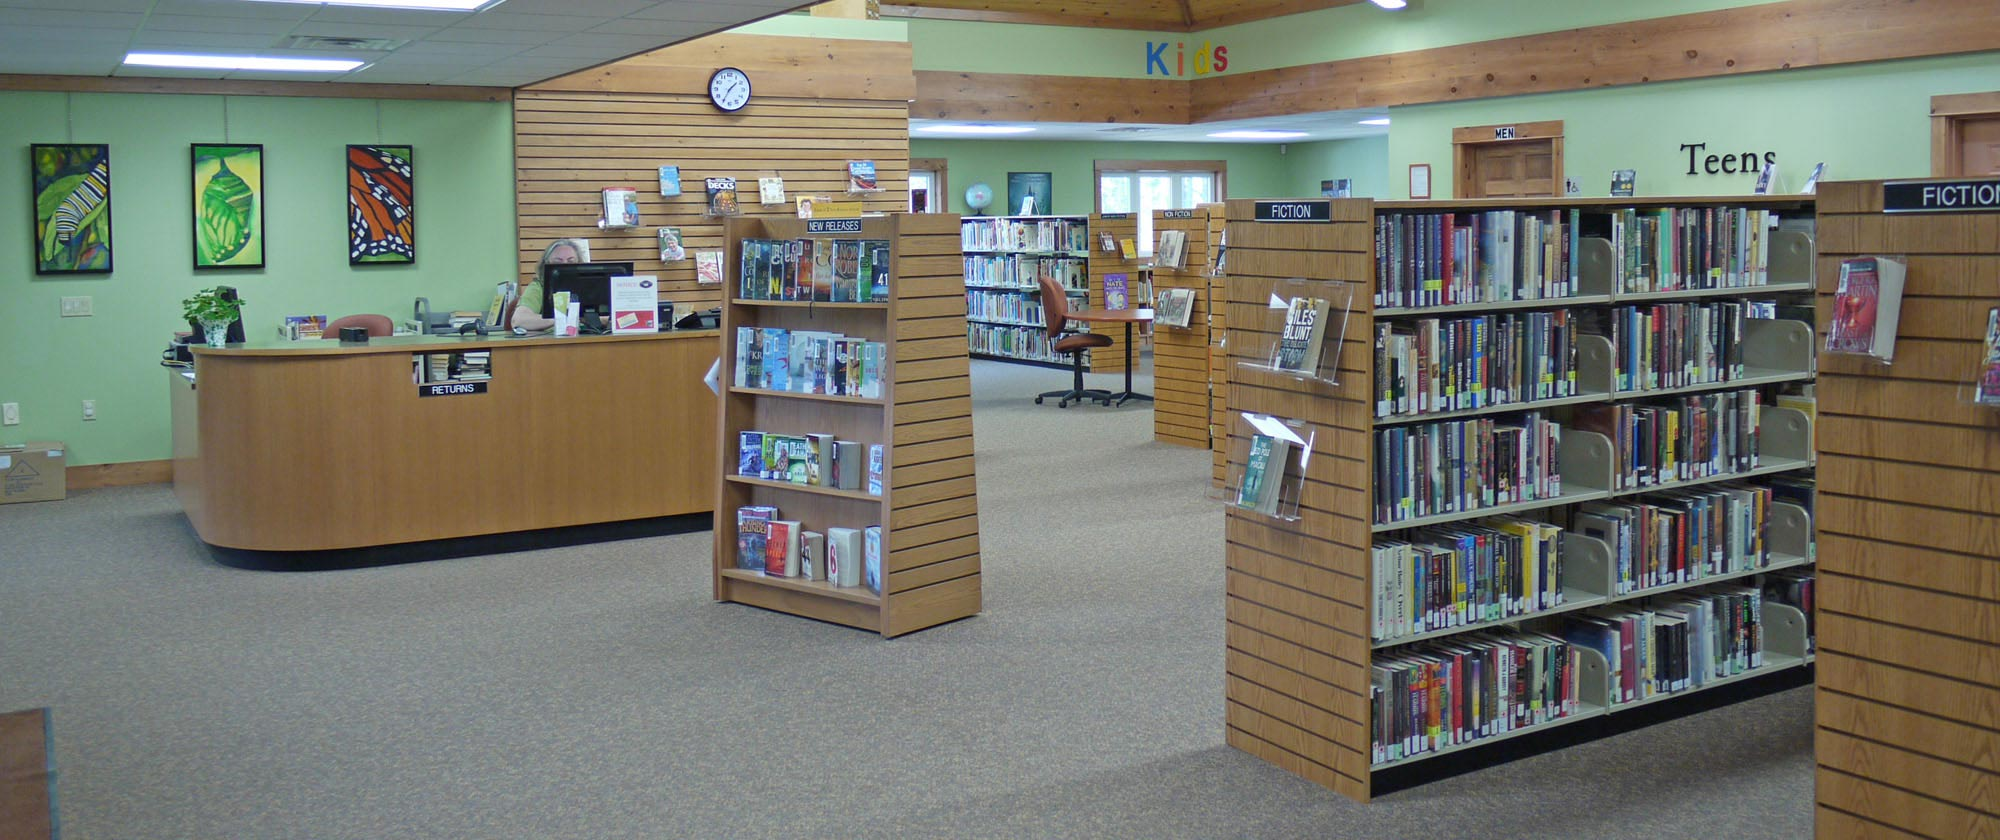 Apsley Branch Library